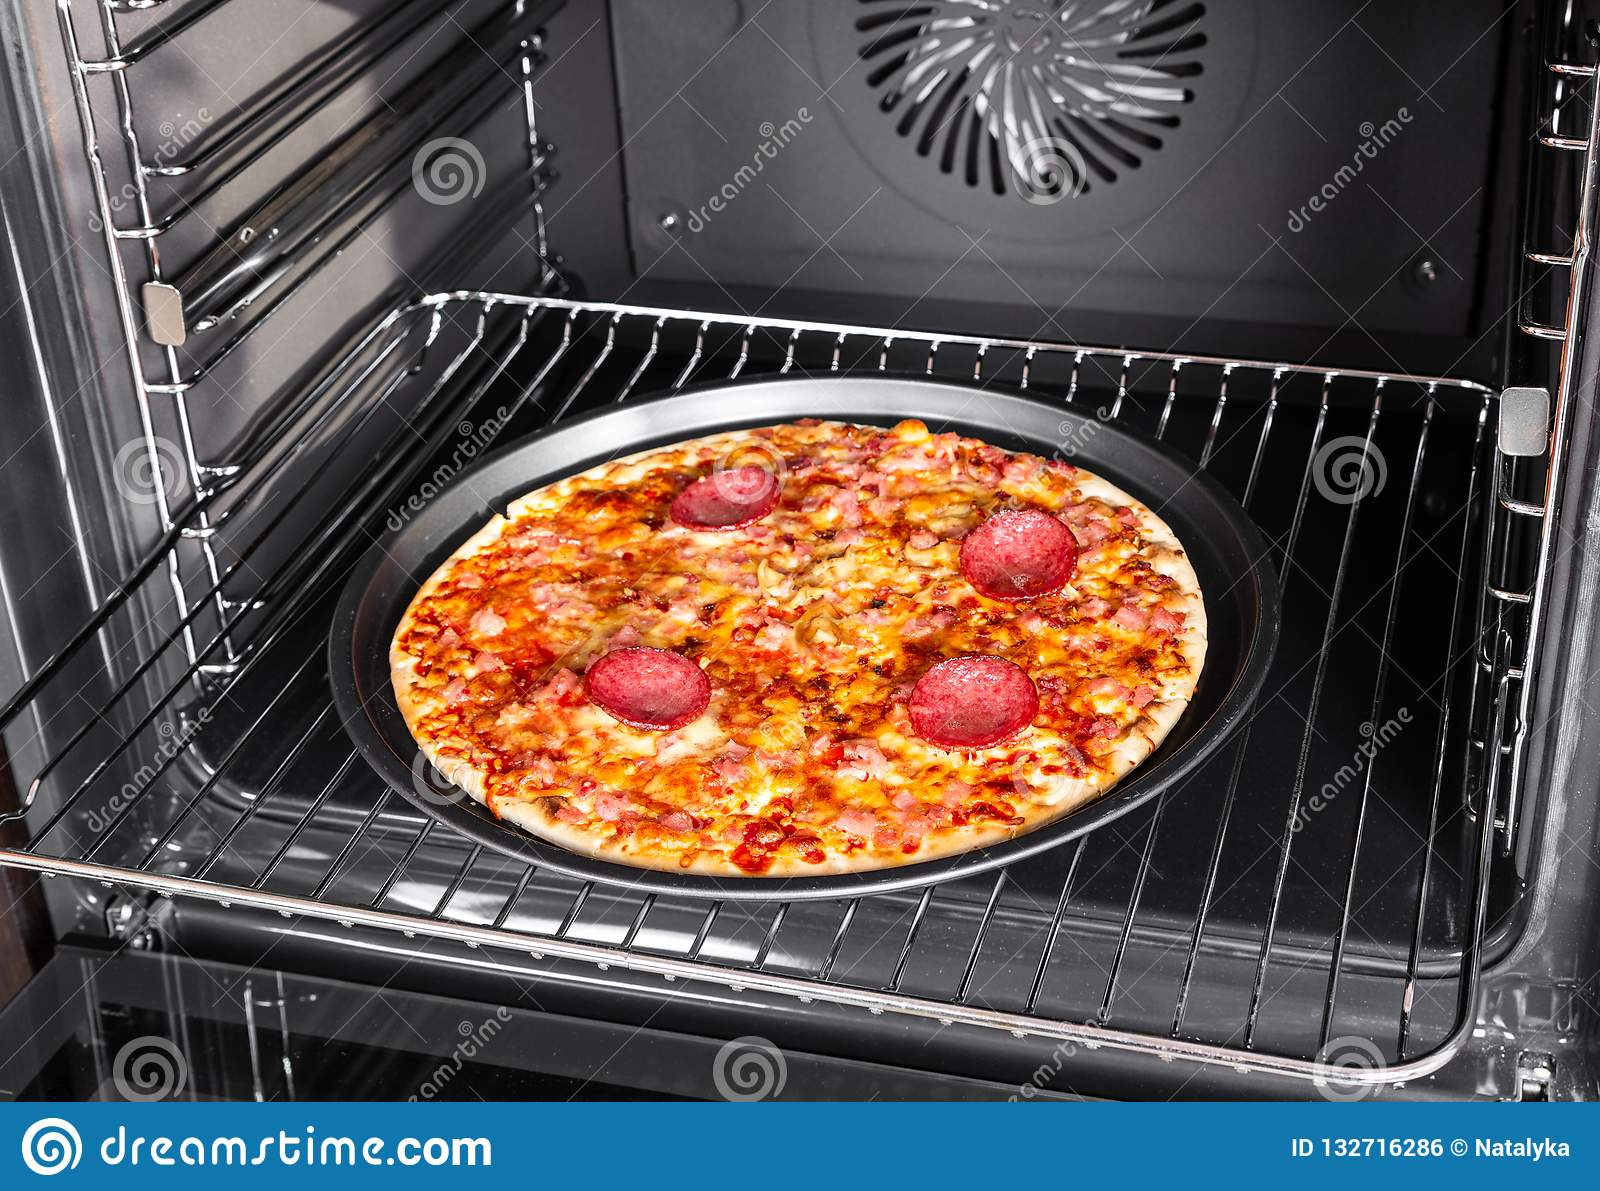 Cooking homemade pizza with salami sausage in an electric oven